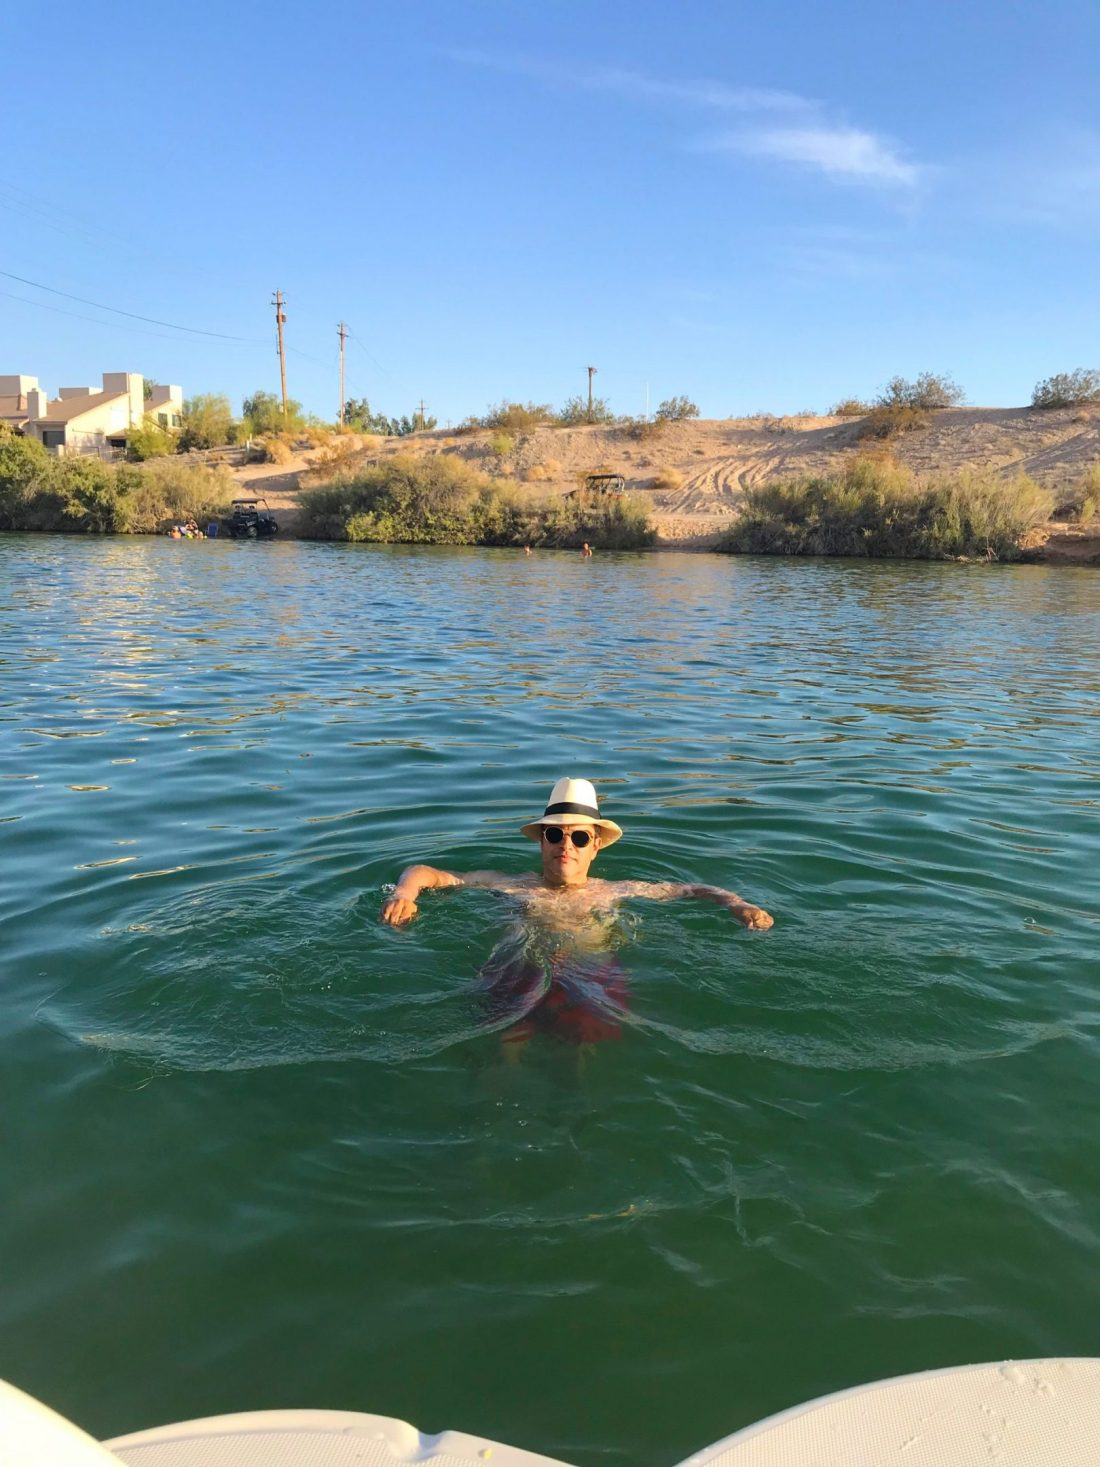 Douglas taking a dip on Lake Havasu